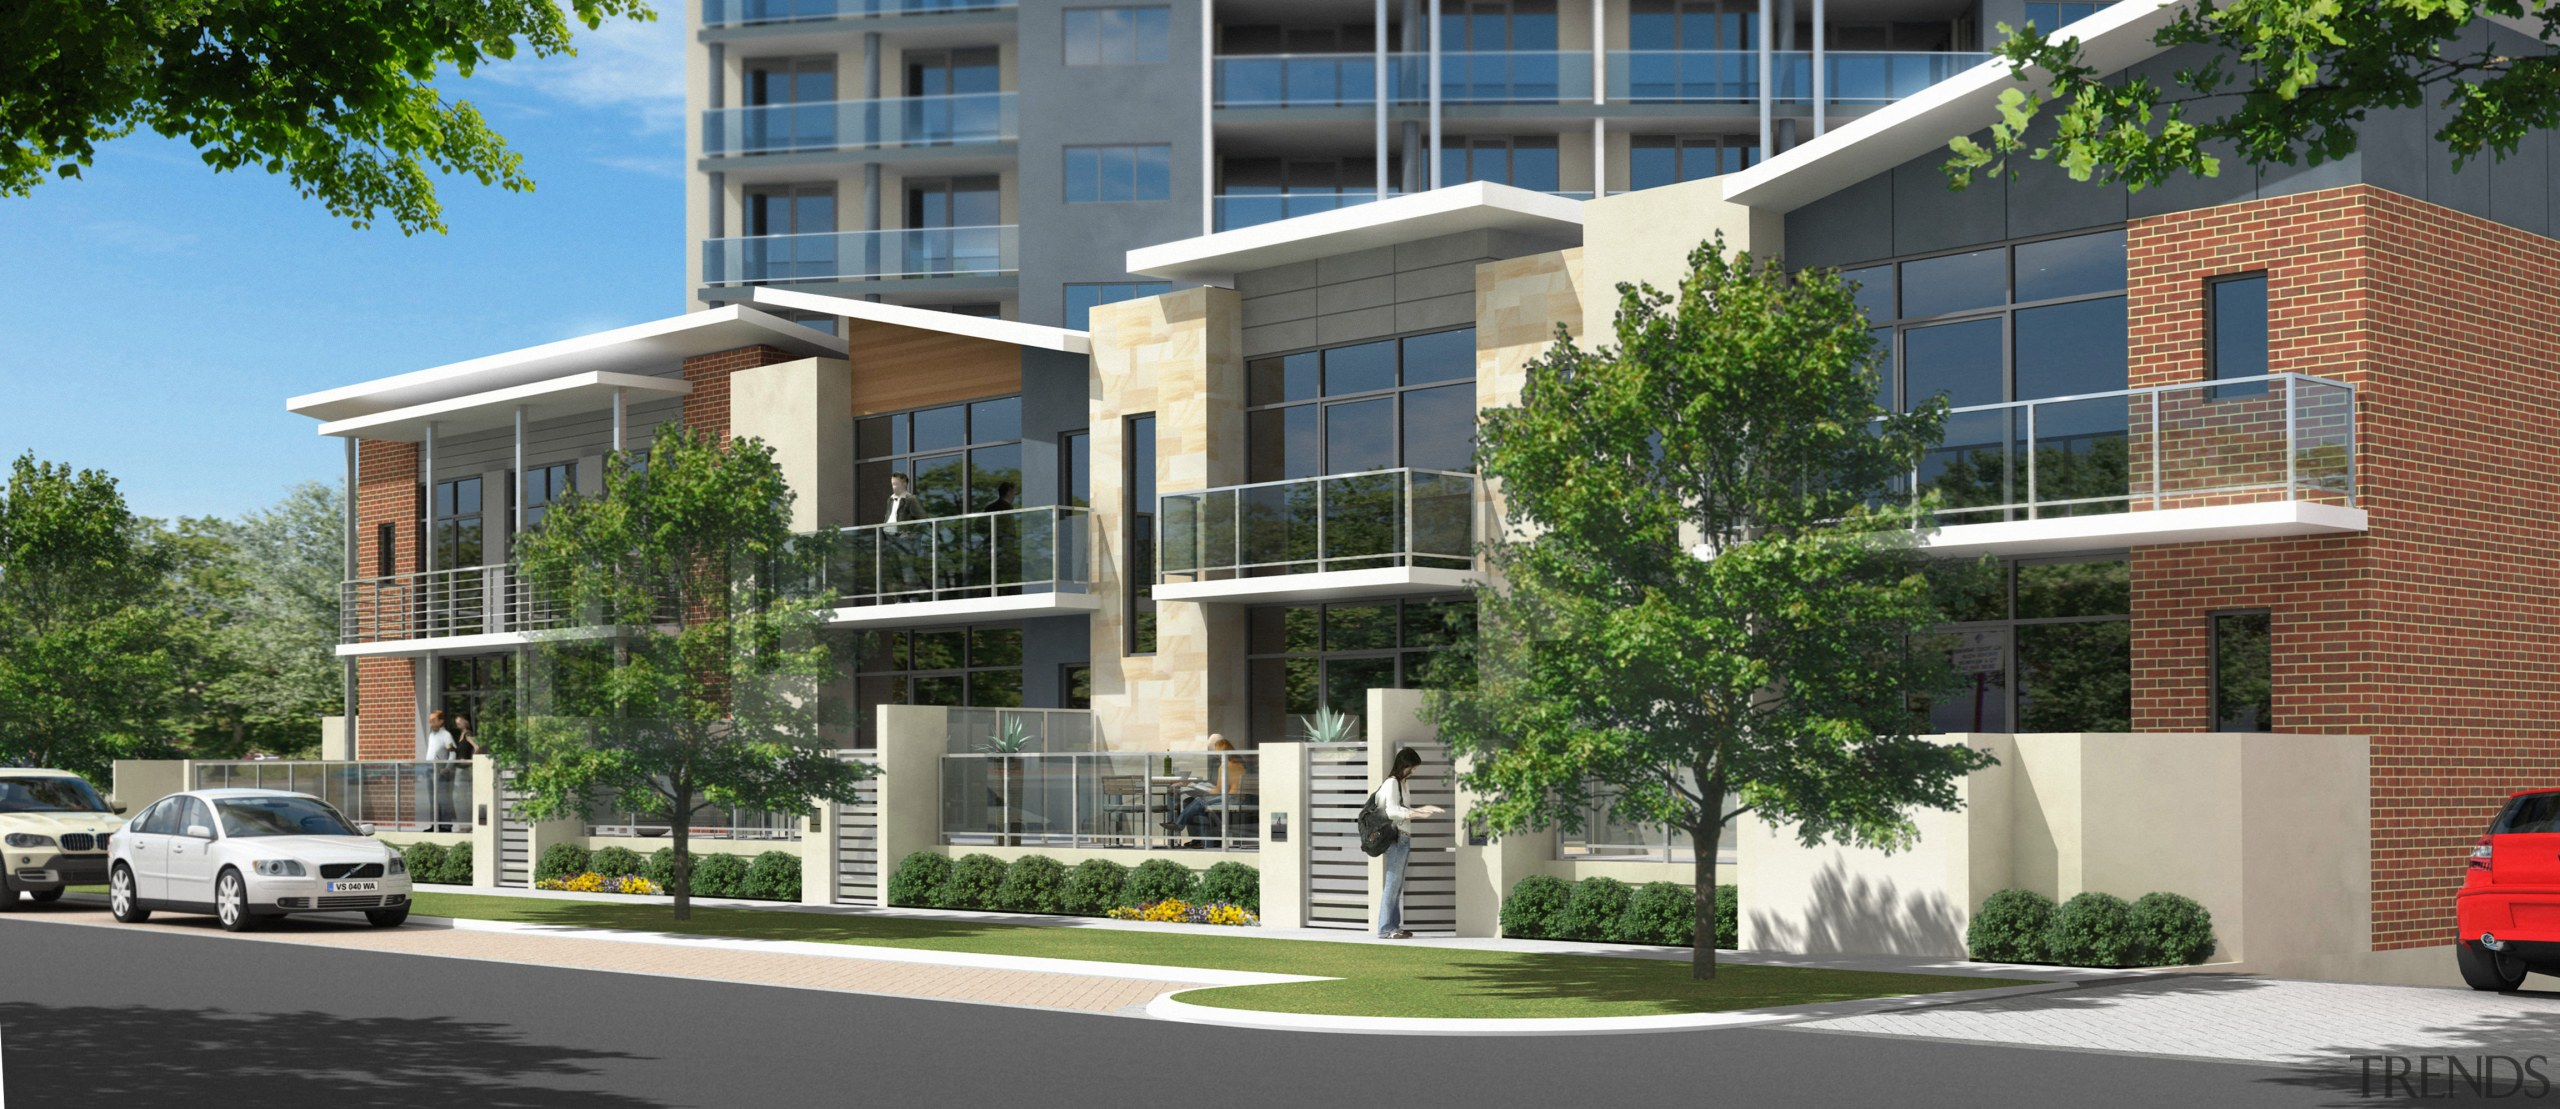 The Edge Apartments Will Introduce A Strong Vi Nt Architectural Form And Aesthetic To Victoria Park In Perth The Two Story Apartments Have Private